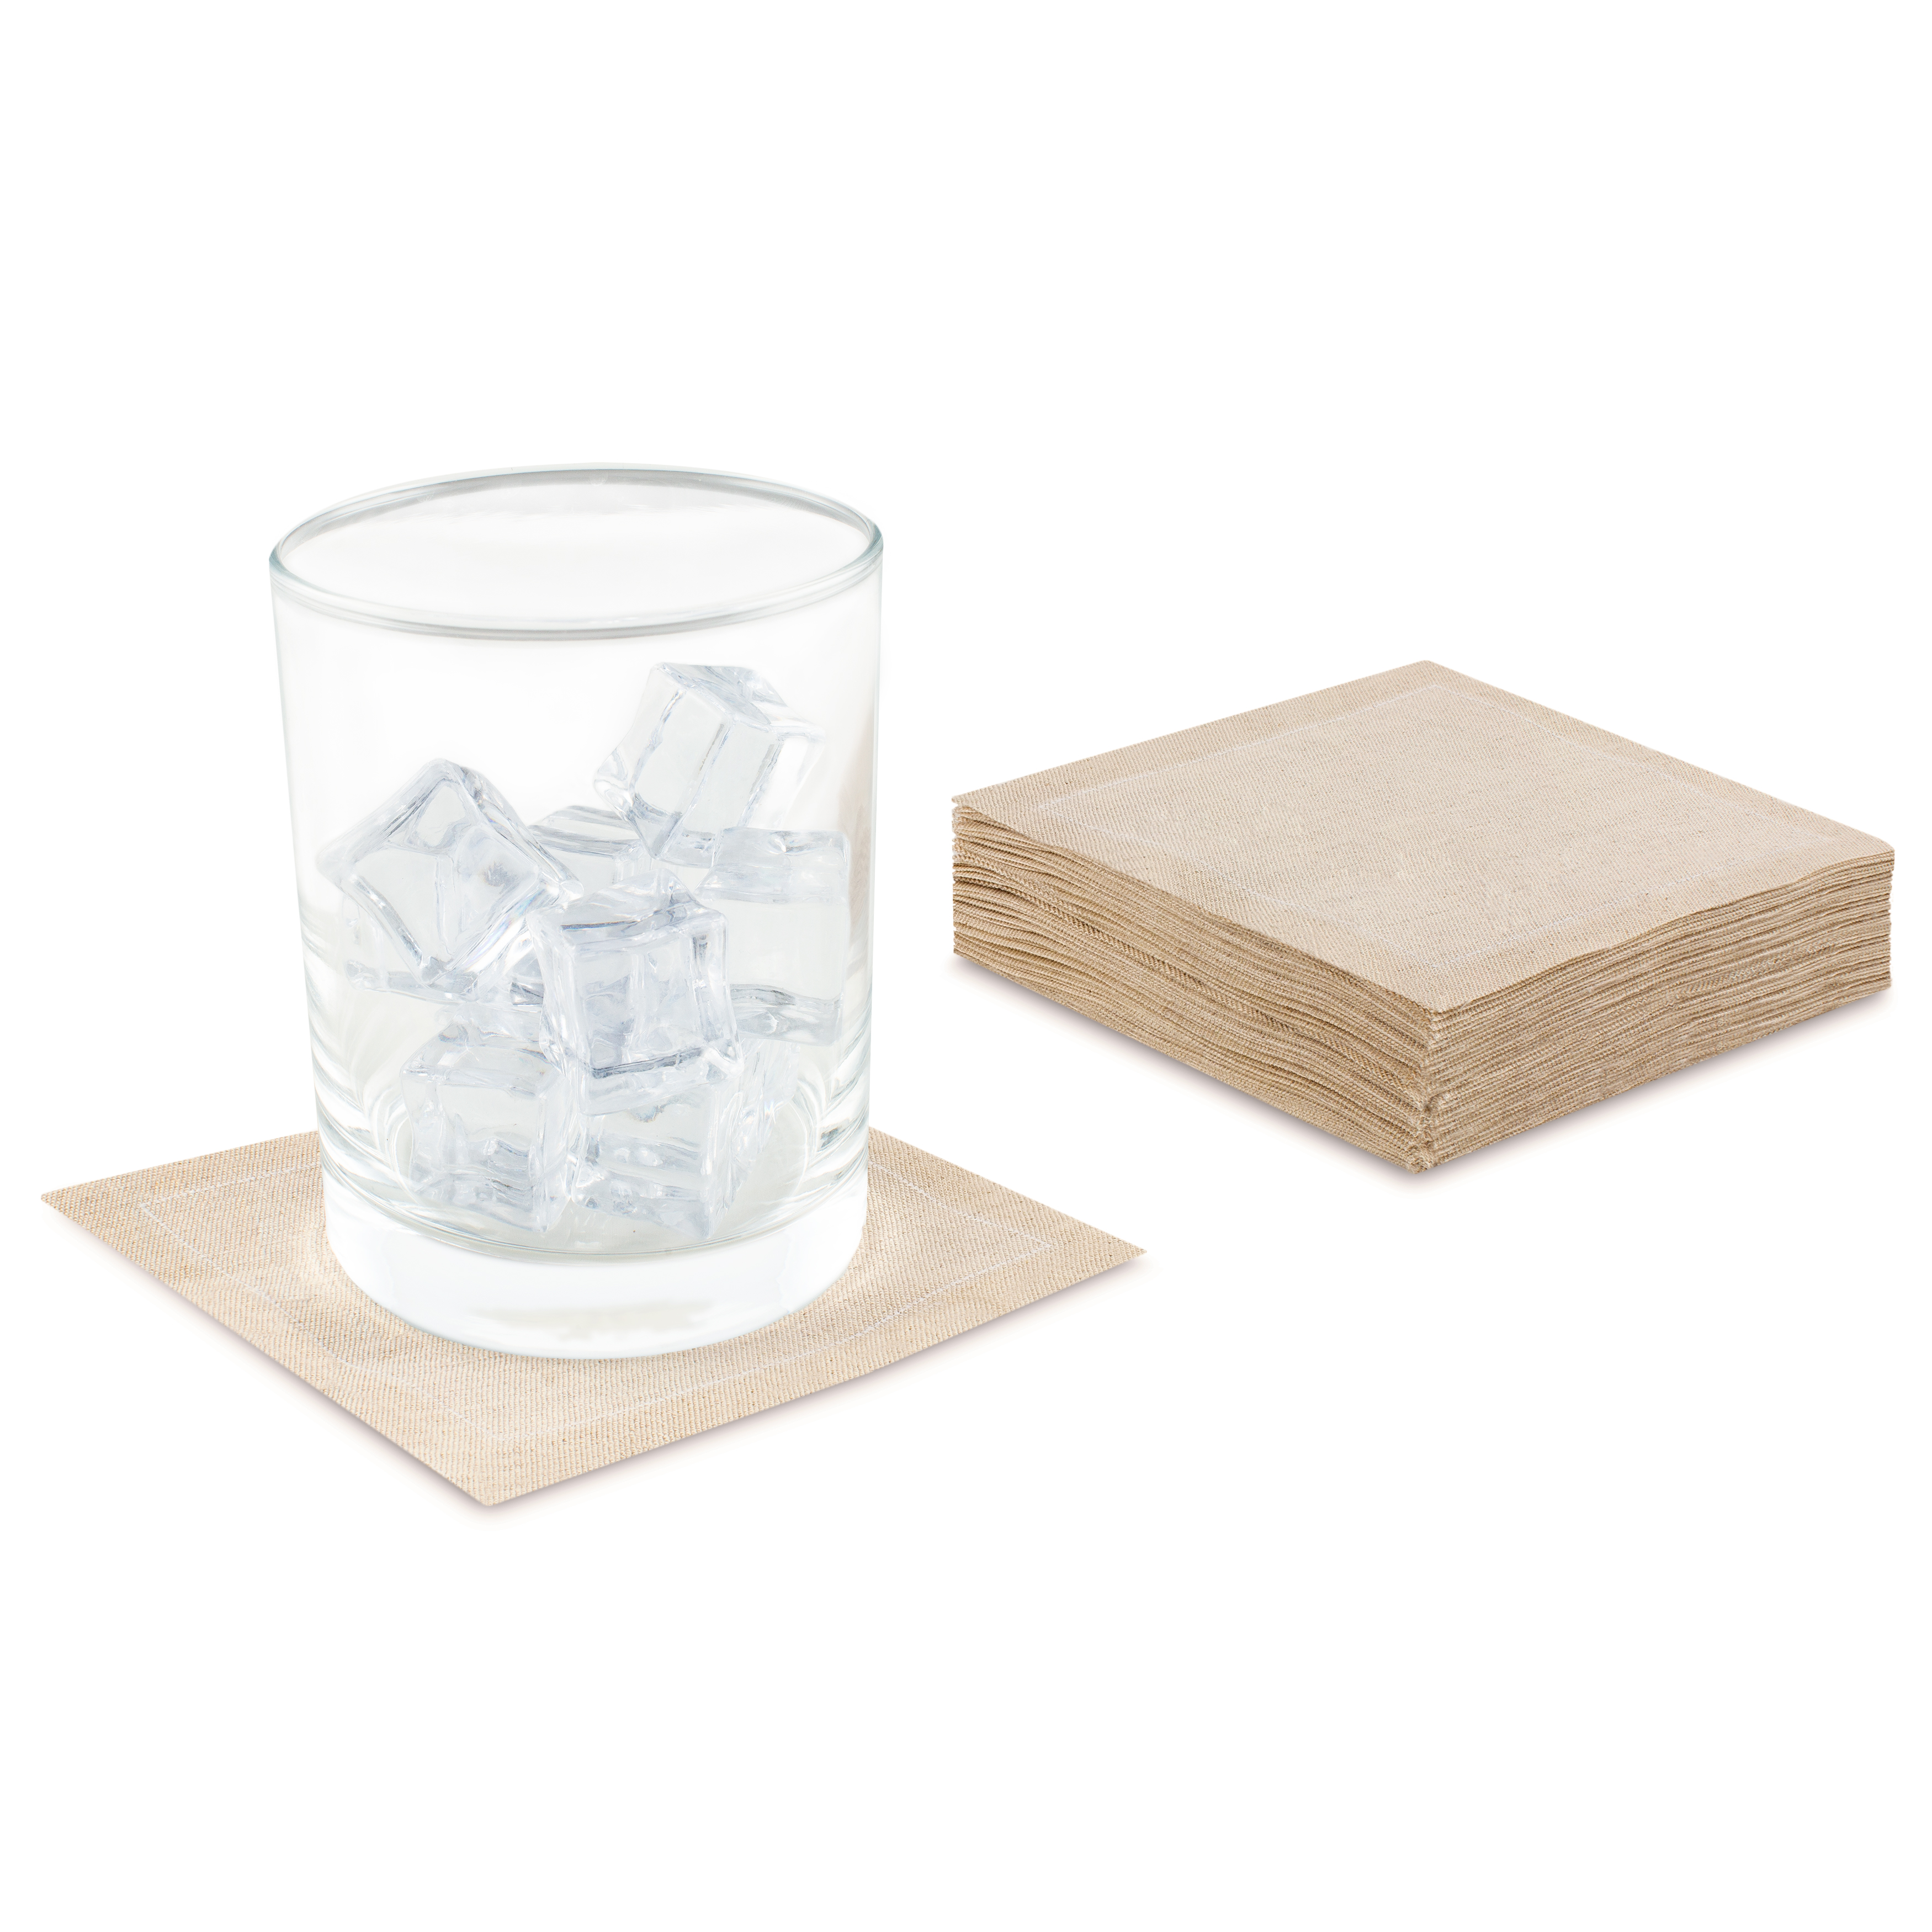 "Natural Linen Cocktail - 4.5"" x 4.5"" - 50 Units"